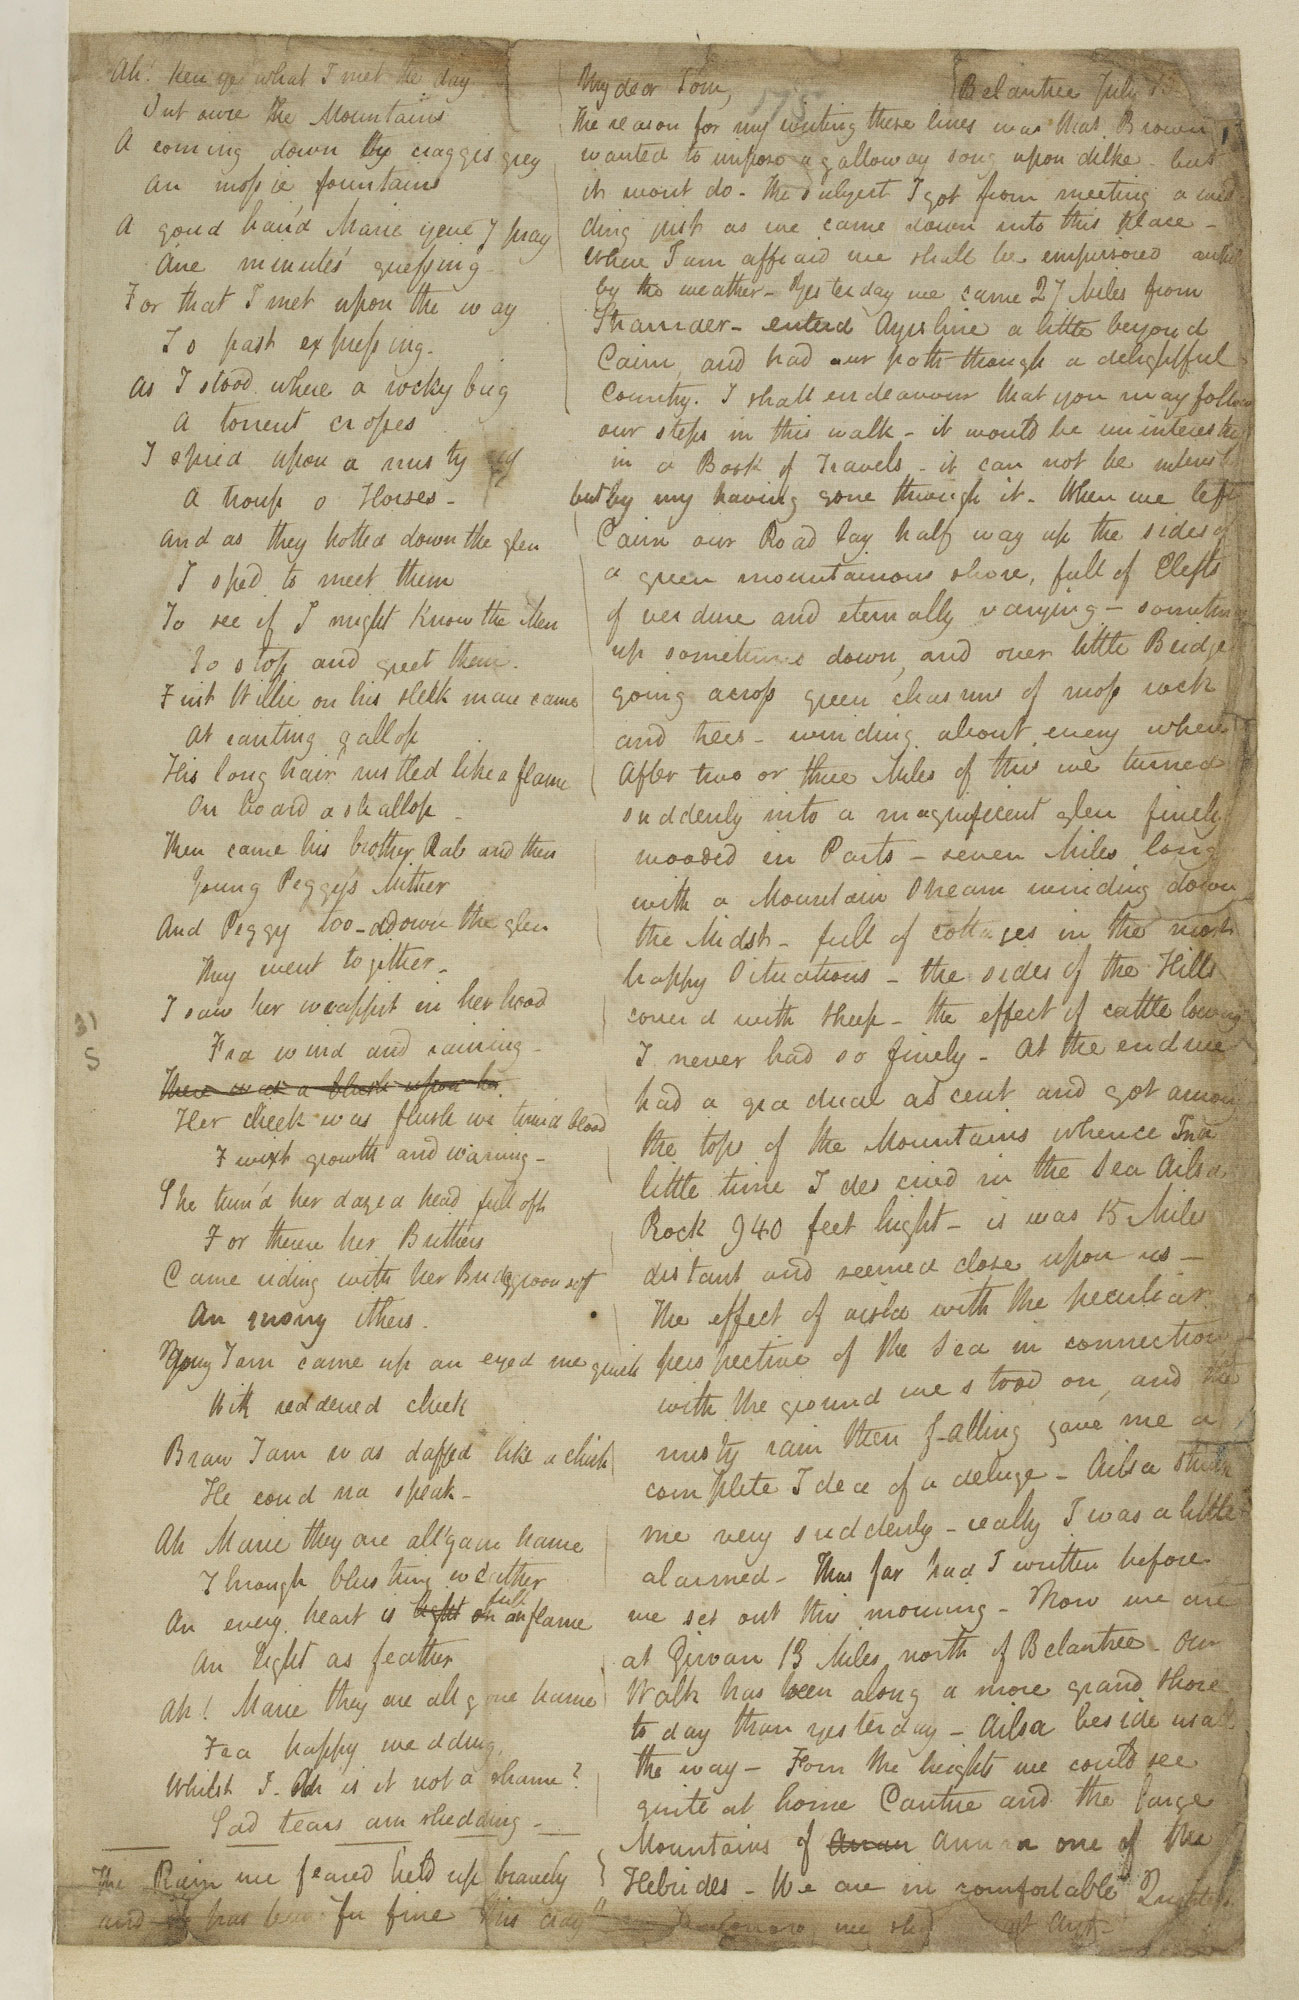 """John Keat's letter to his brother, John. Featured in John Keats """"Selected Letters"""" in the Examined Life Library."""